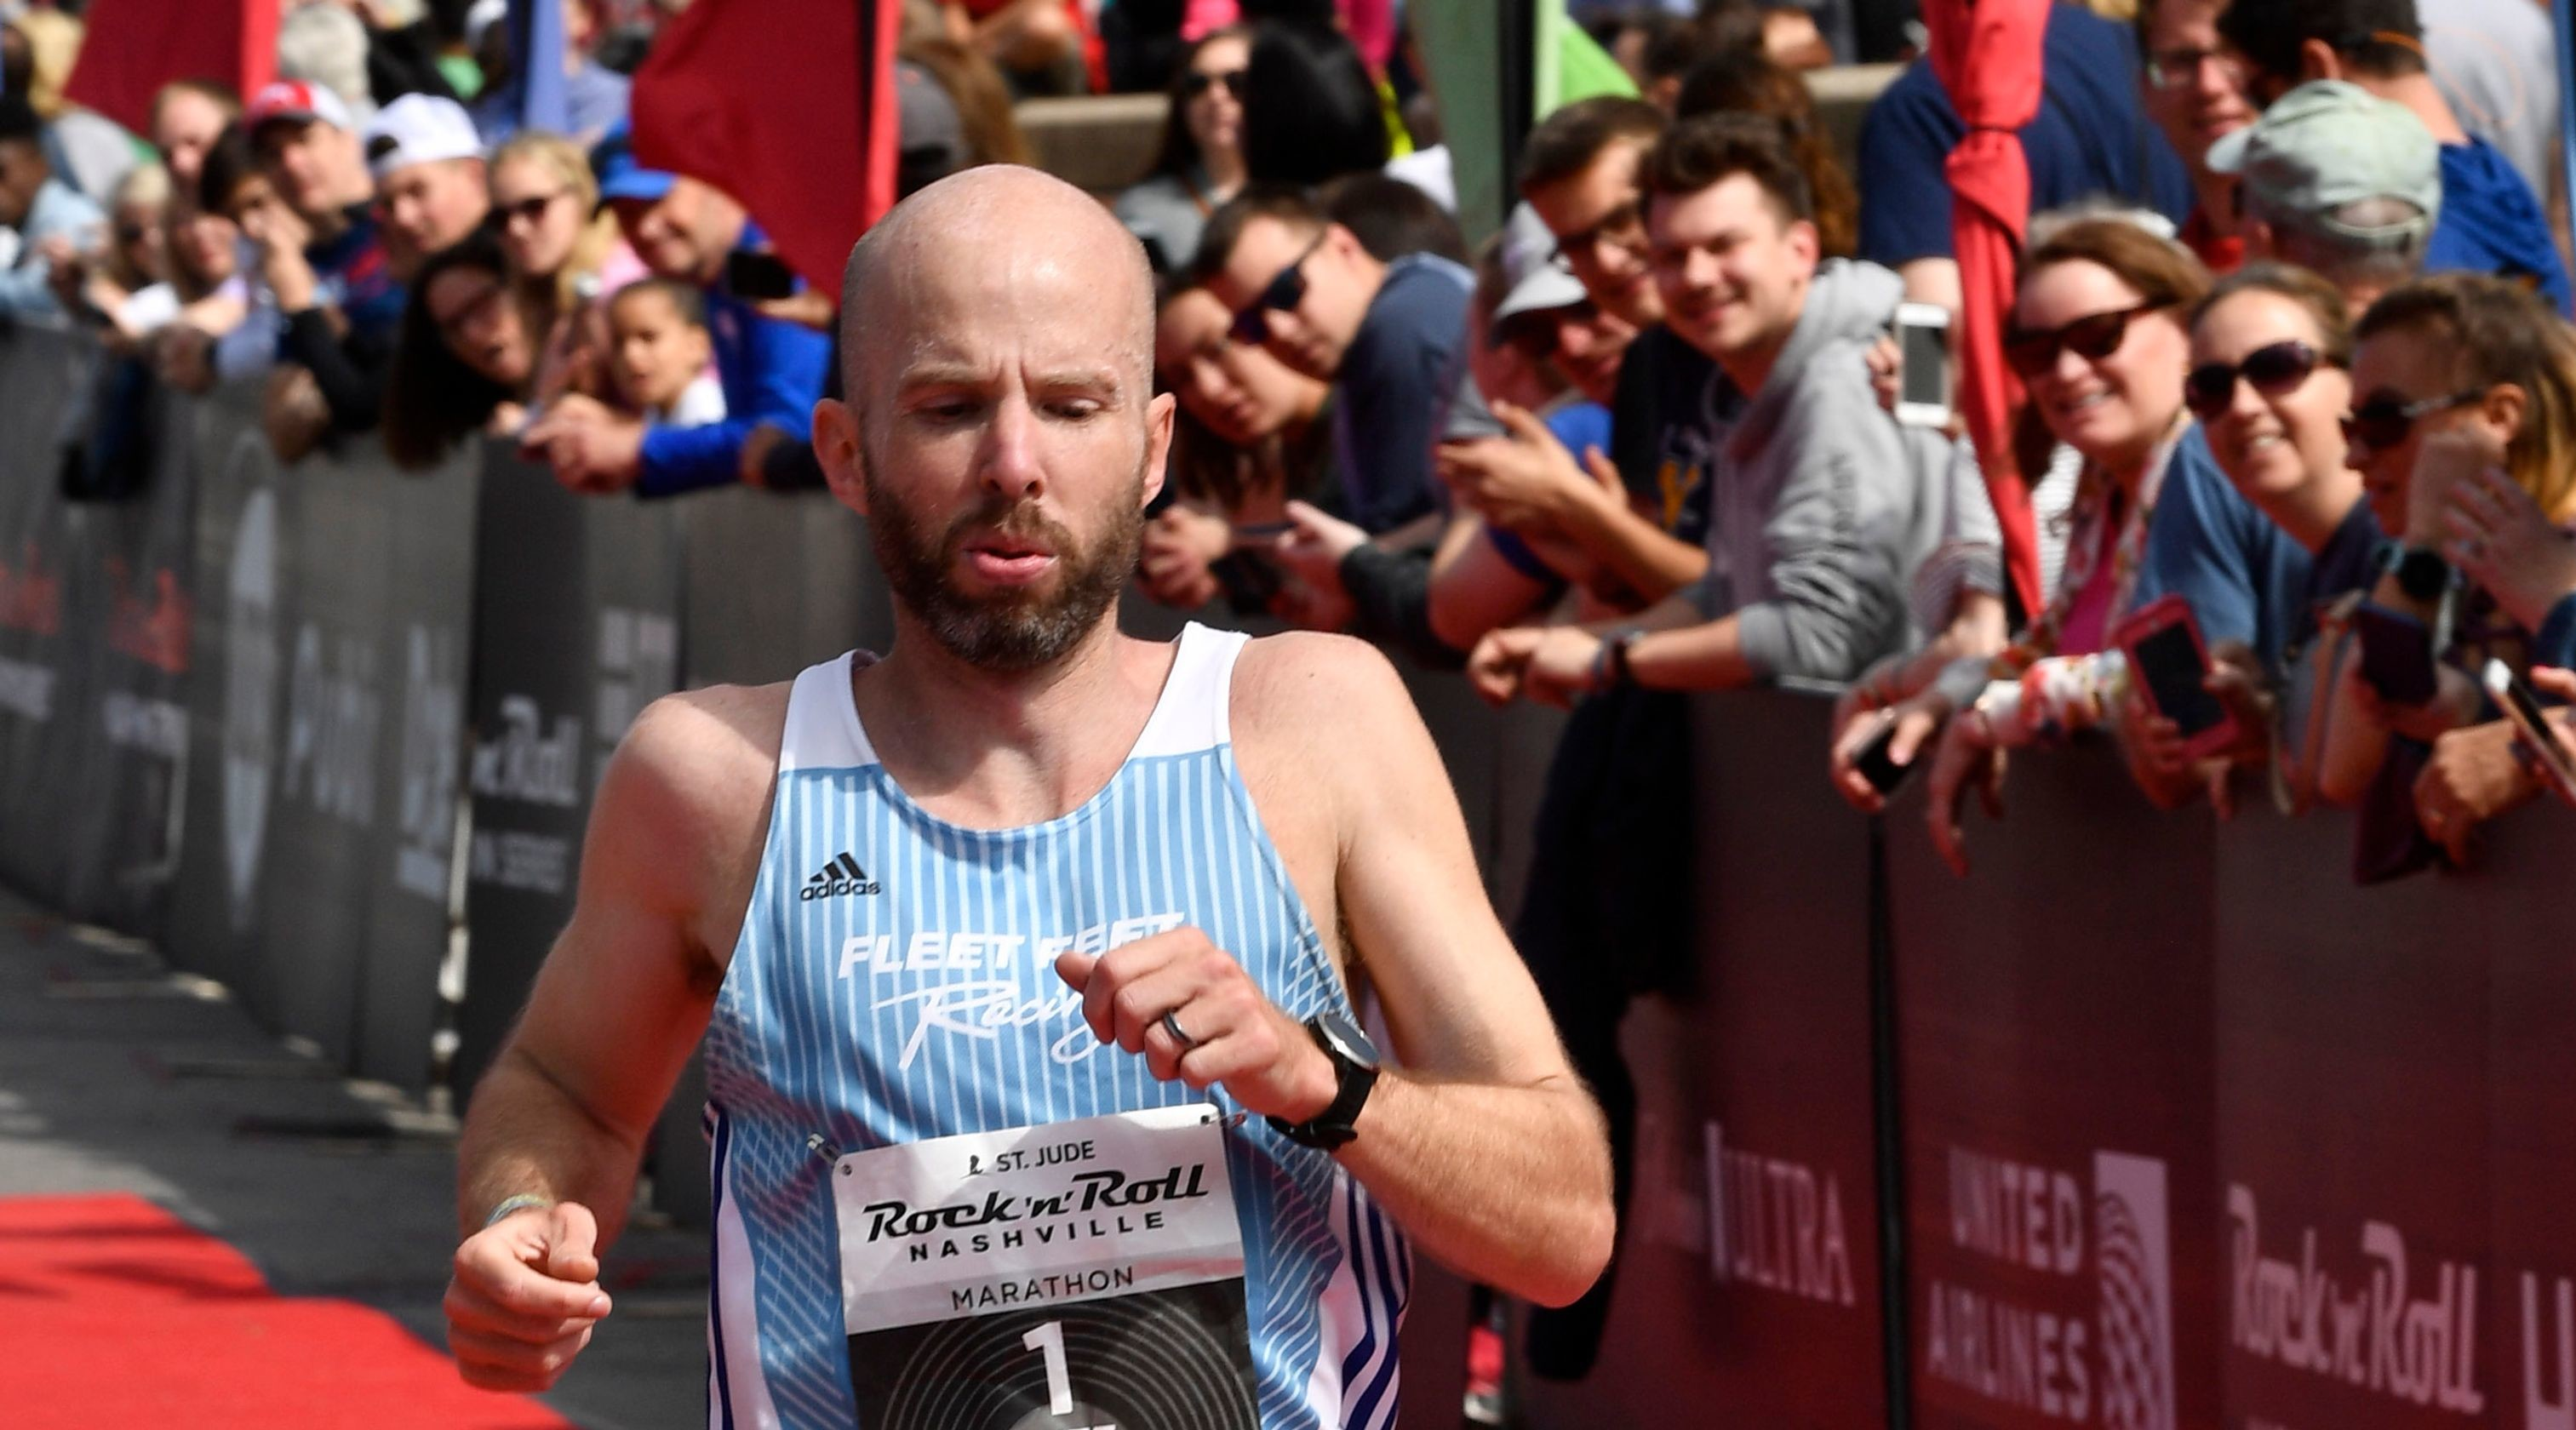 Scott Wietecha won the St. Jude Rock and Roll Marathon for the seventh time